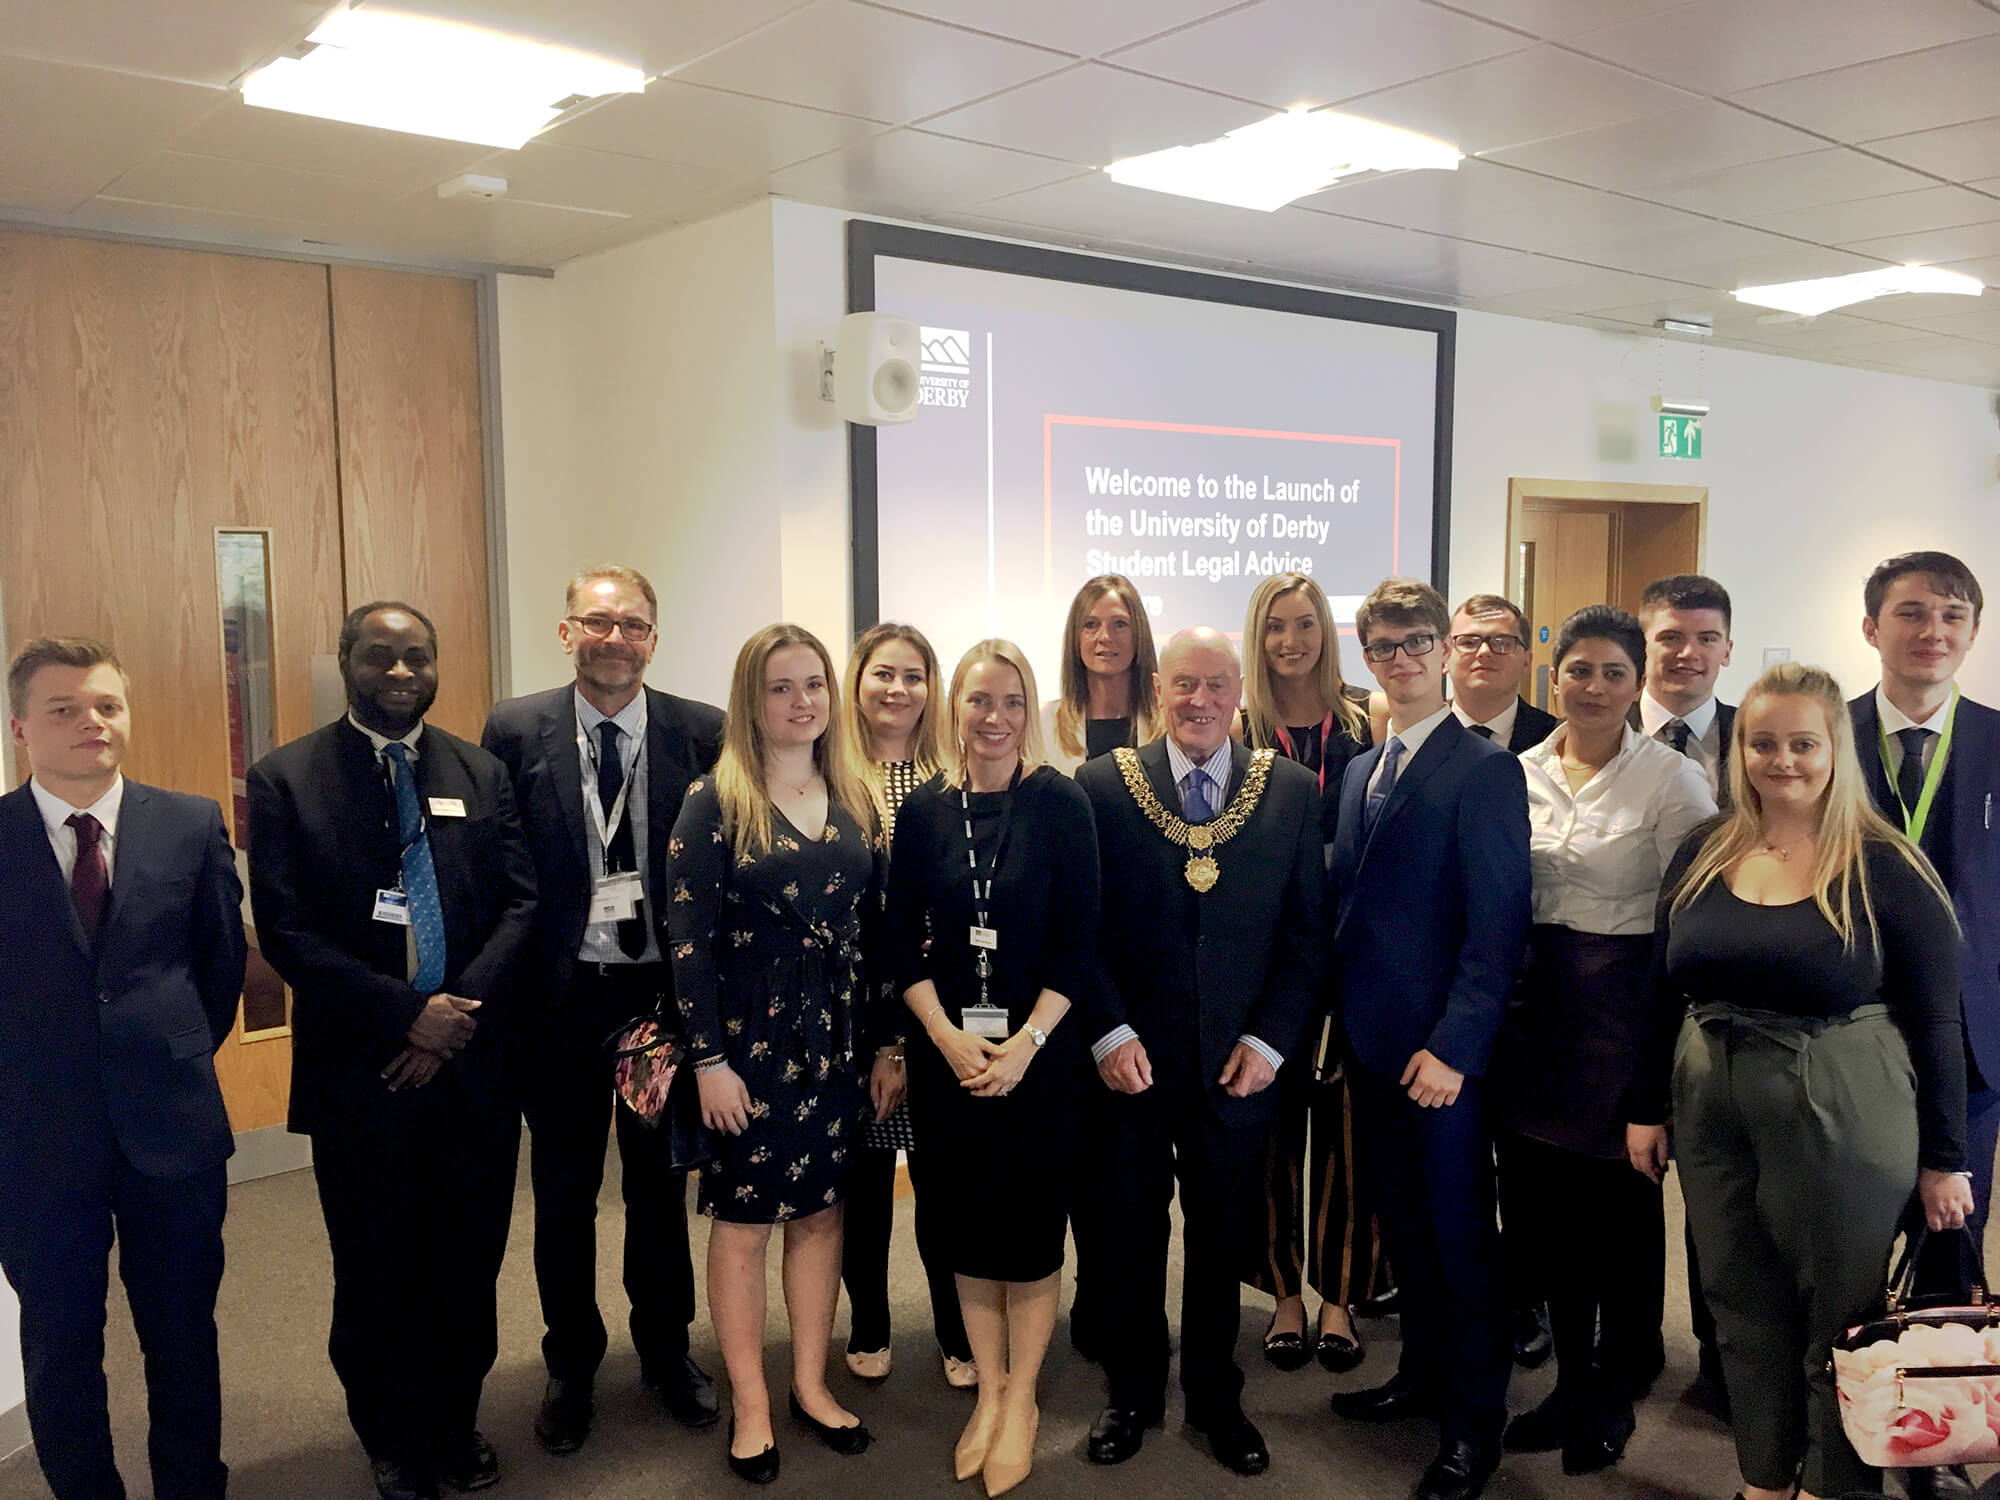 University launch event for the Student Legal Advice Centre